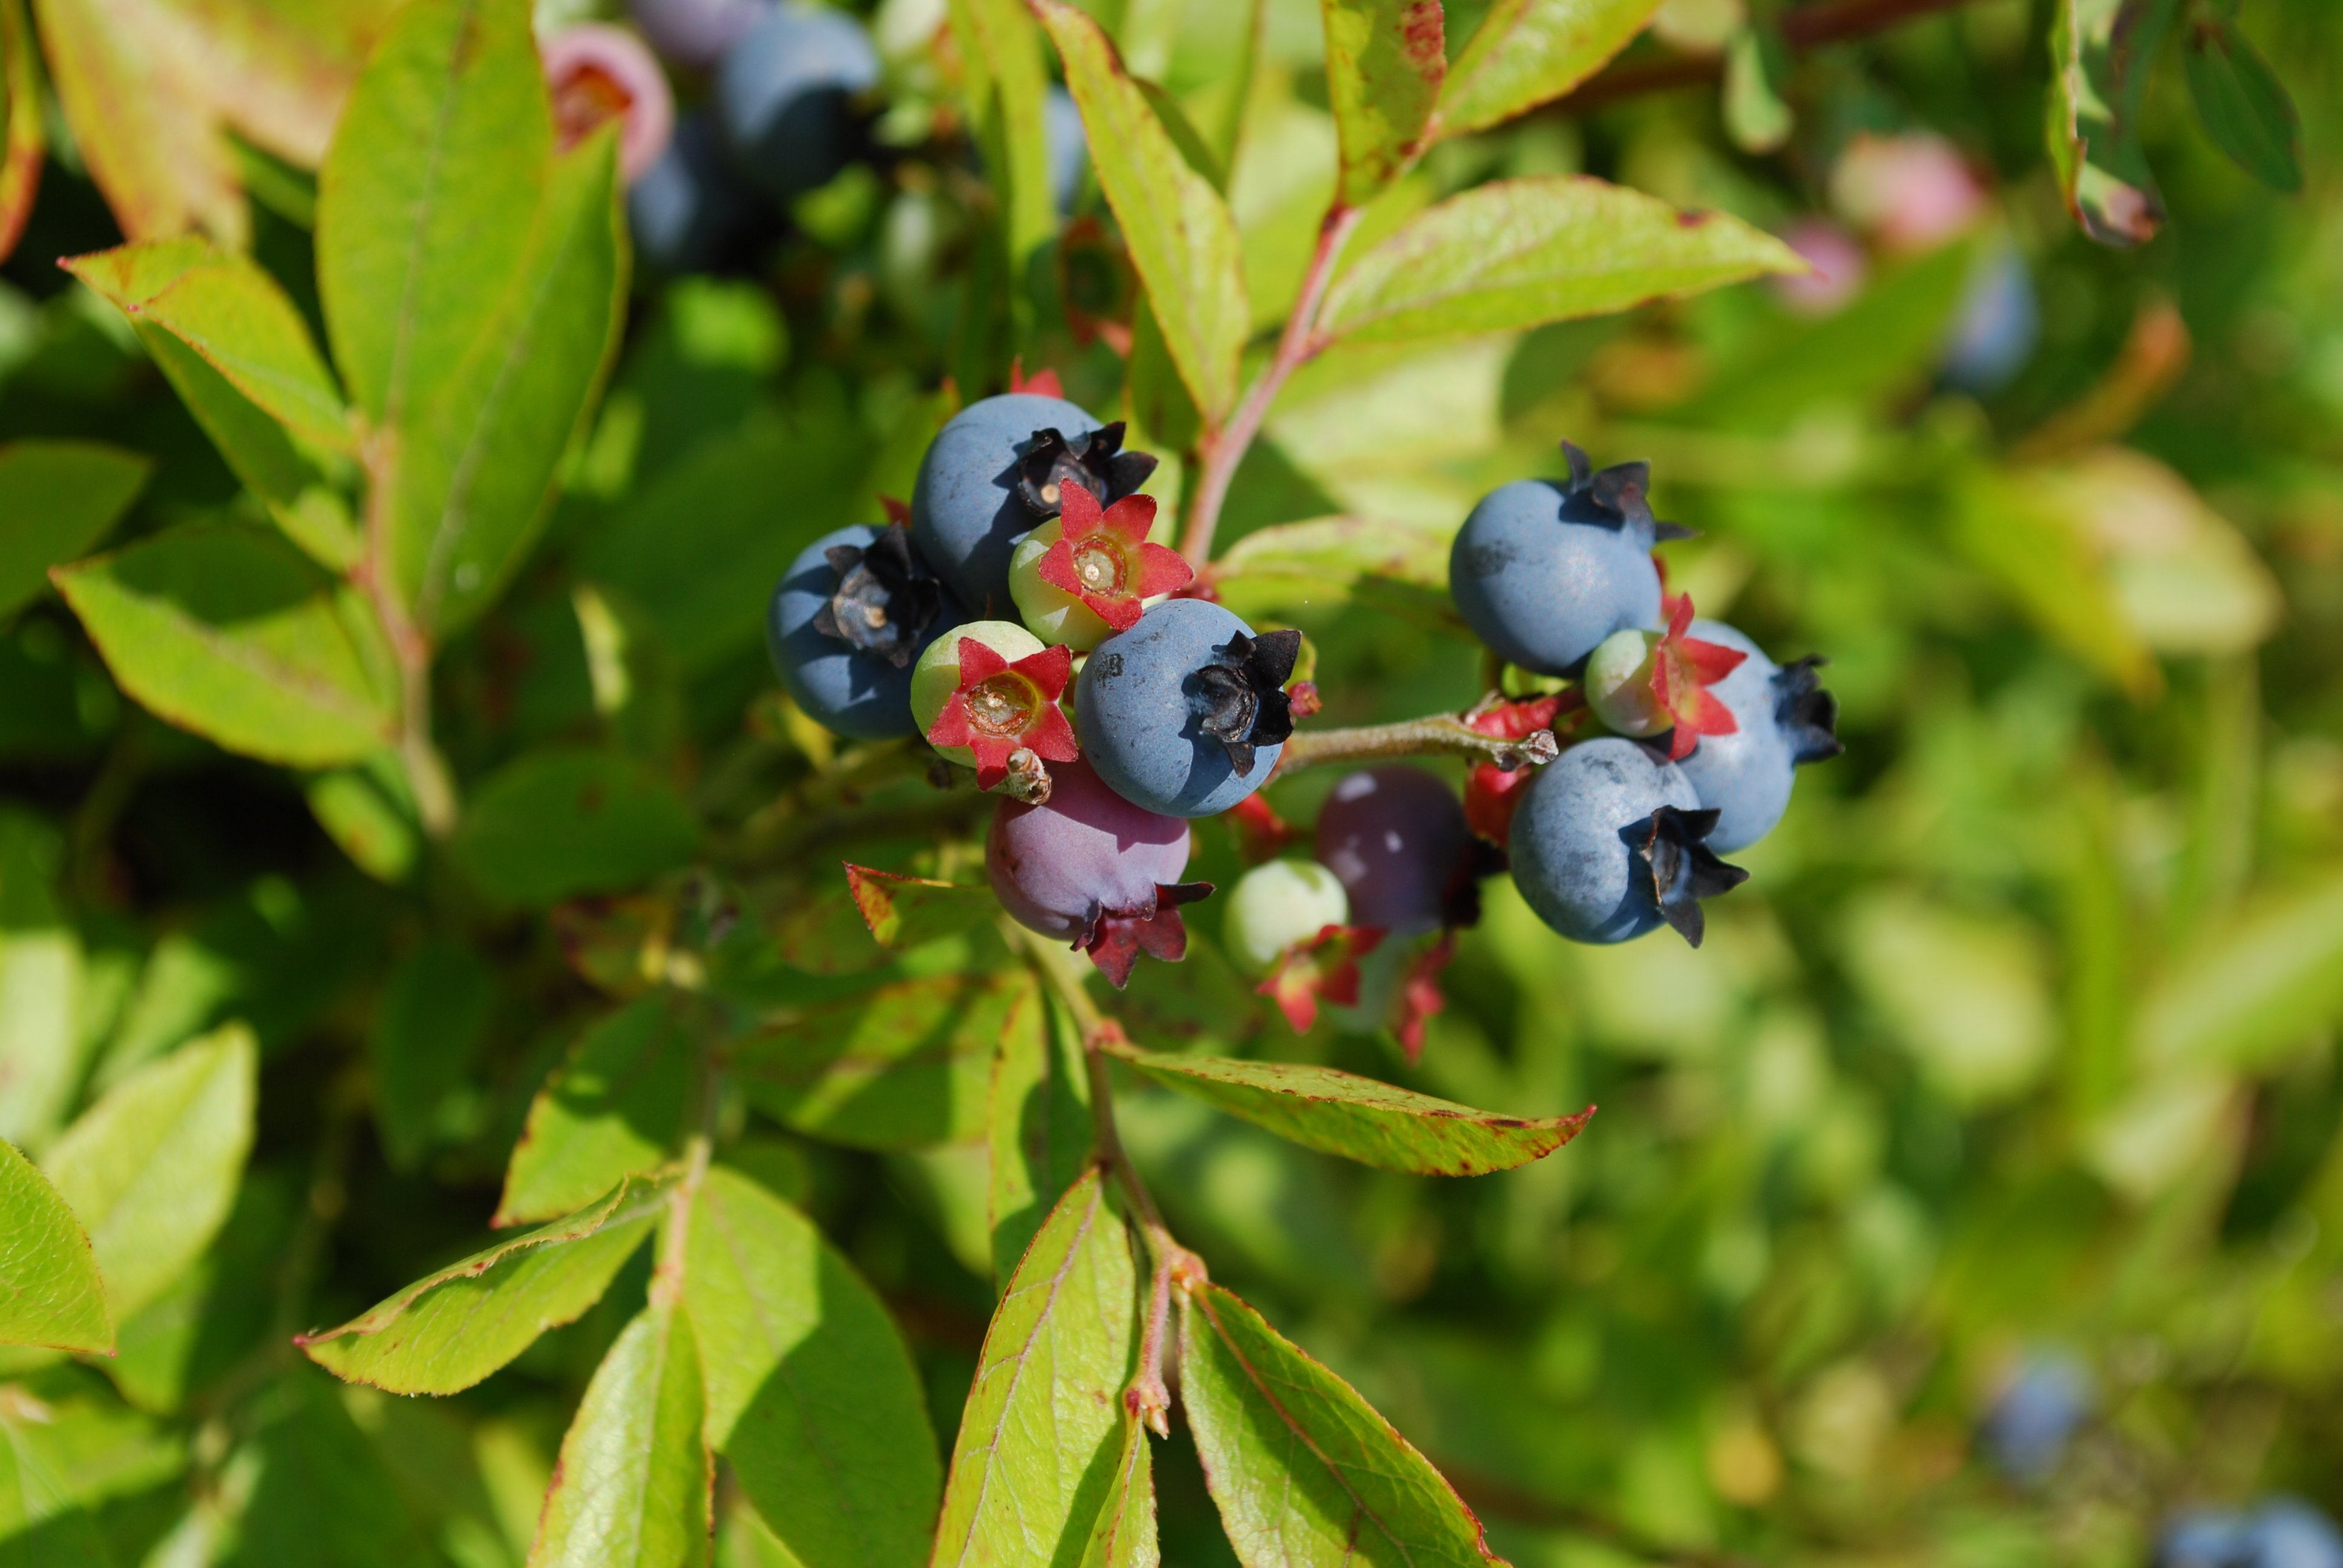 15 acres of Maine Wild Blueberries growing at Savage Oakes Vineyard & Winery, Union, Maine.